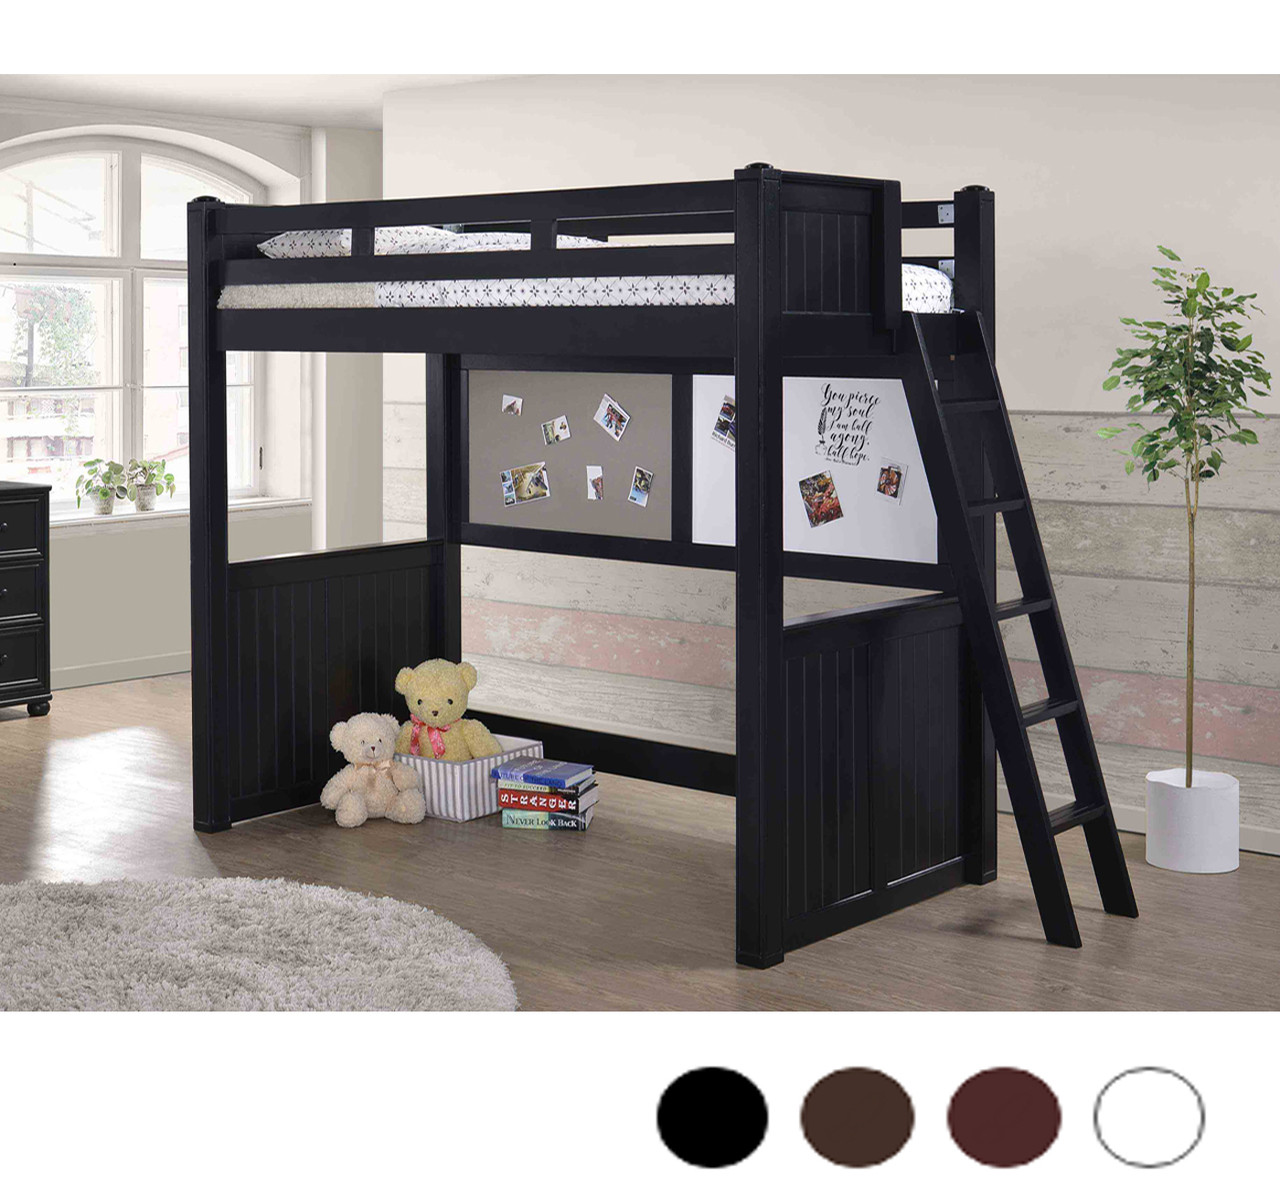 Twin Loft Bed.Molly Wood Twin Size Loft Bed